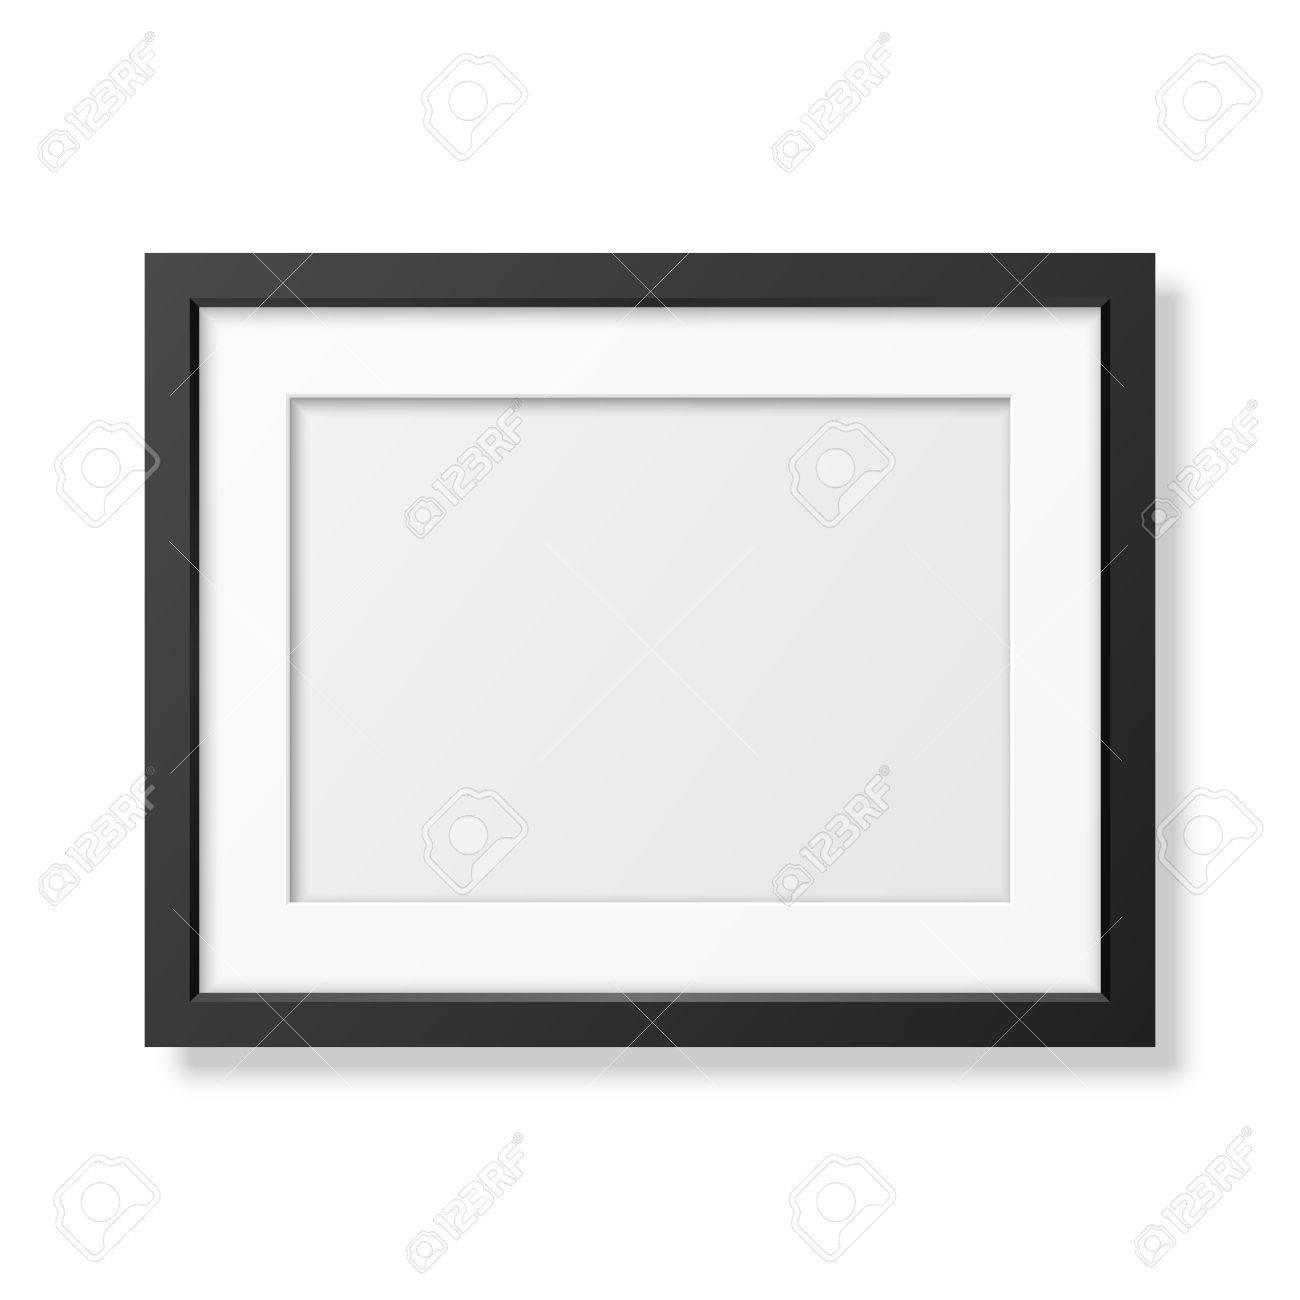 Realistic black frame A4 isolated on white. It can be used for presentations. - 43431660